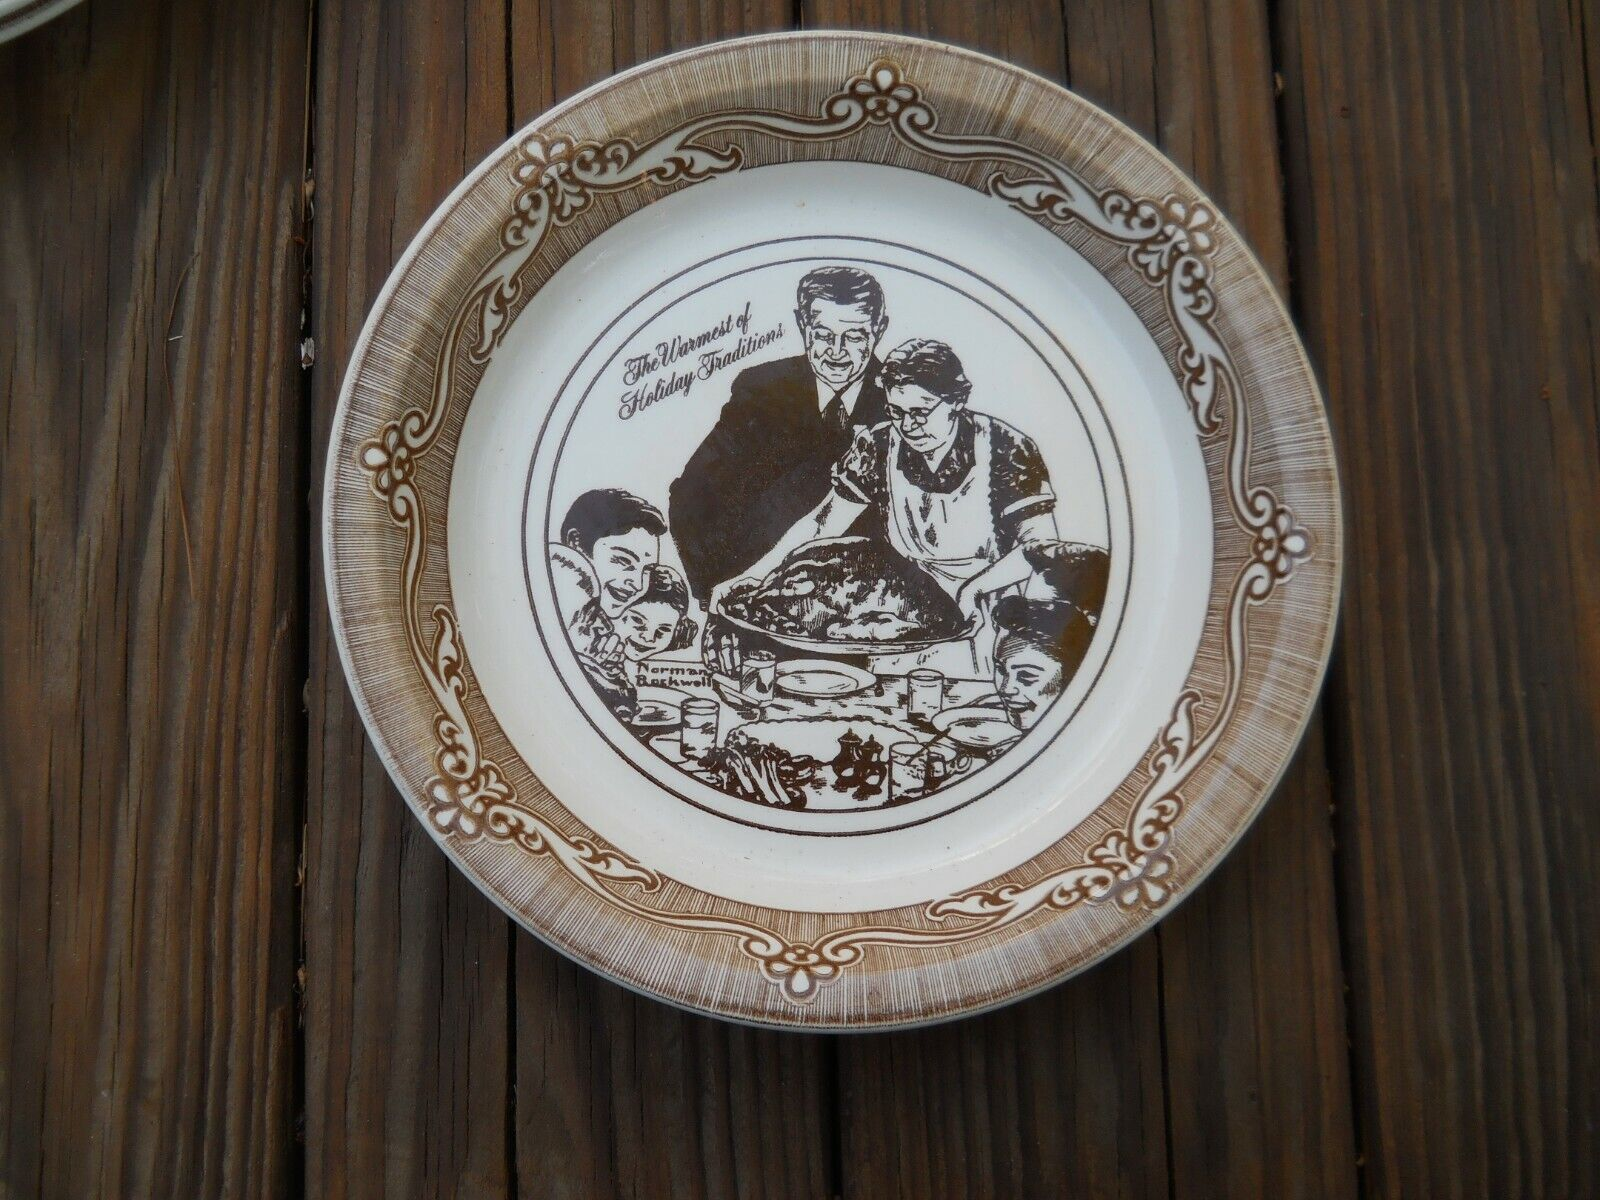 10 FREEDOM FROM WANT PIE PLATE NORMAN ROCKWELL - $4.99